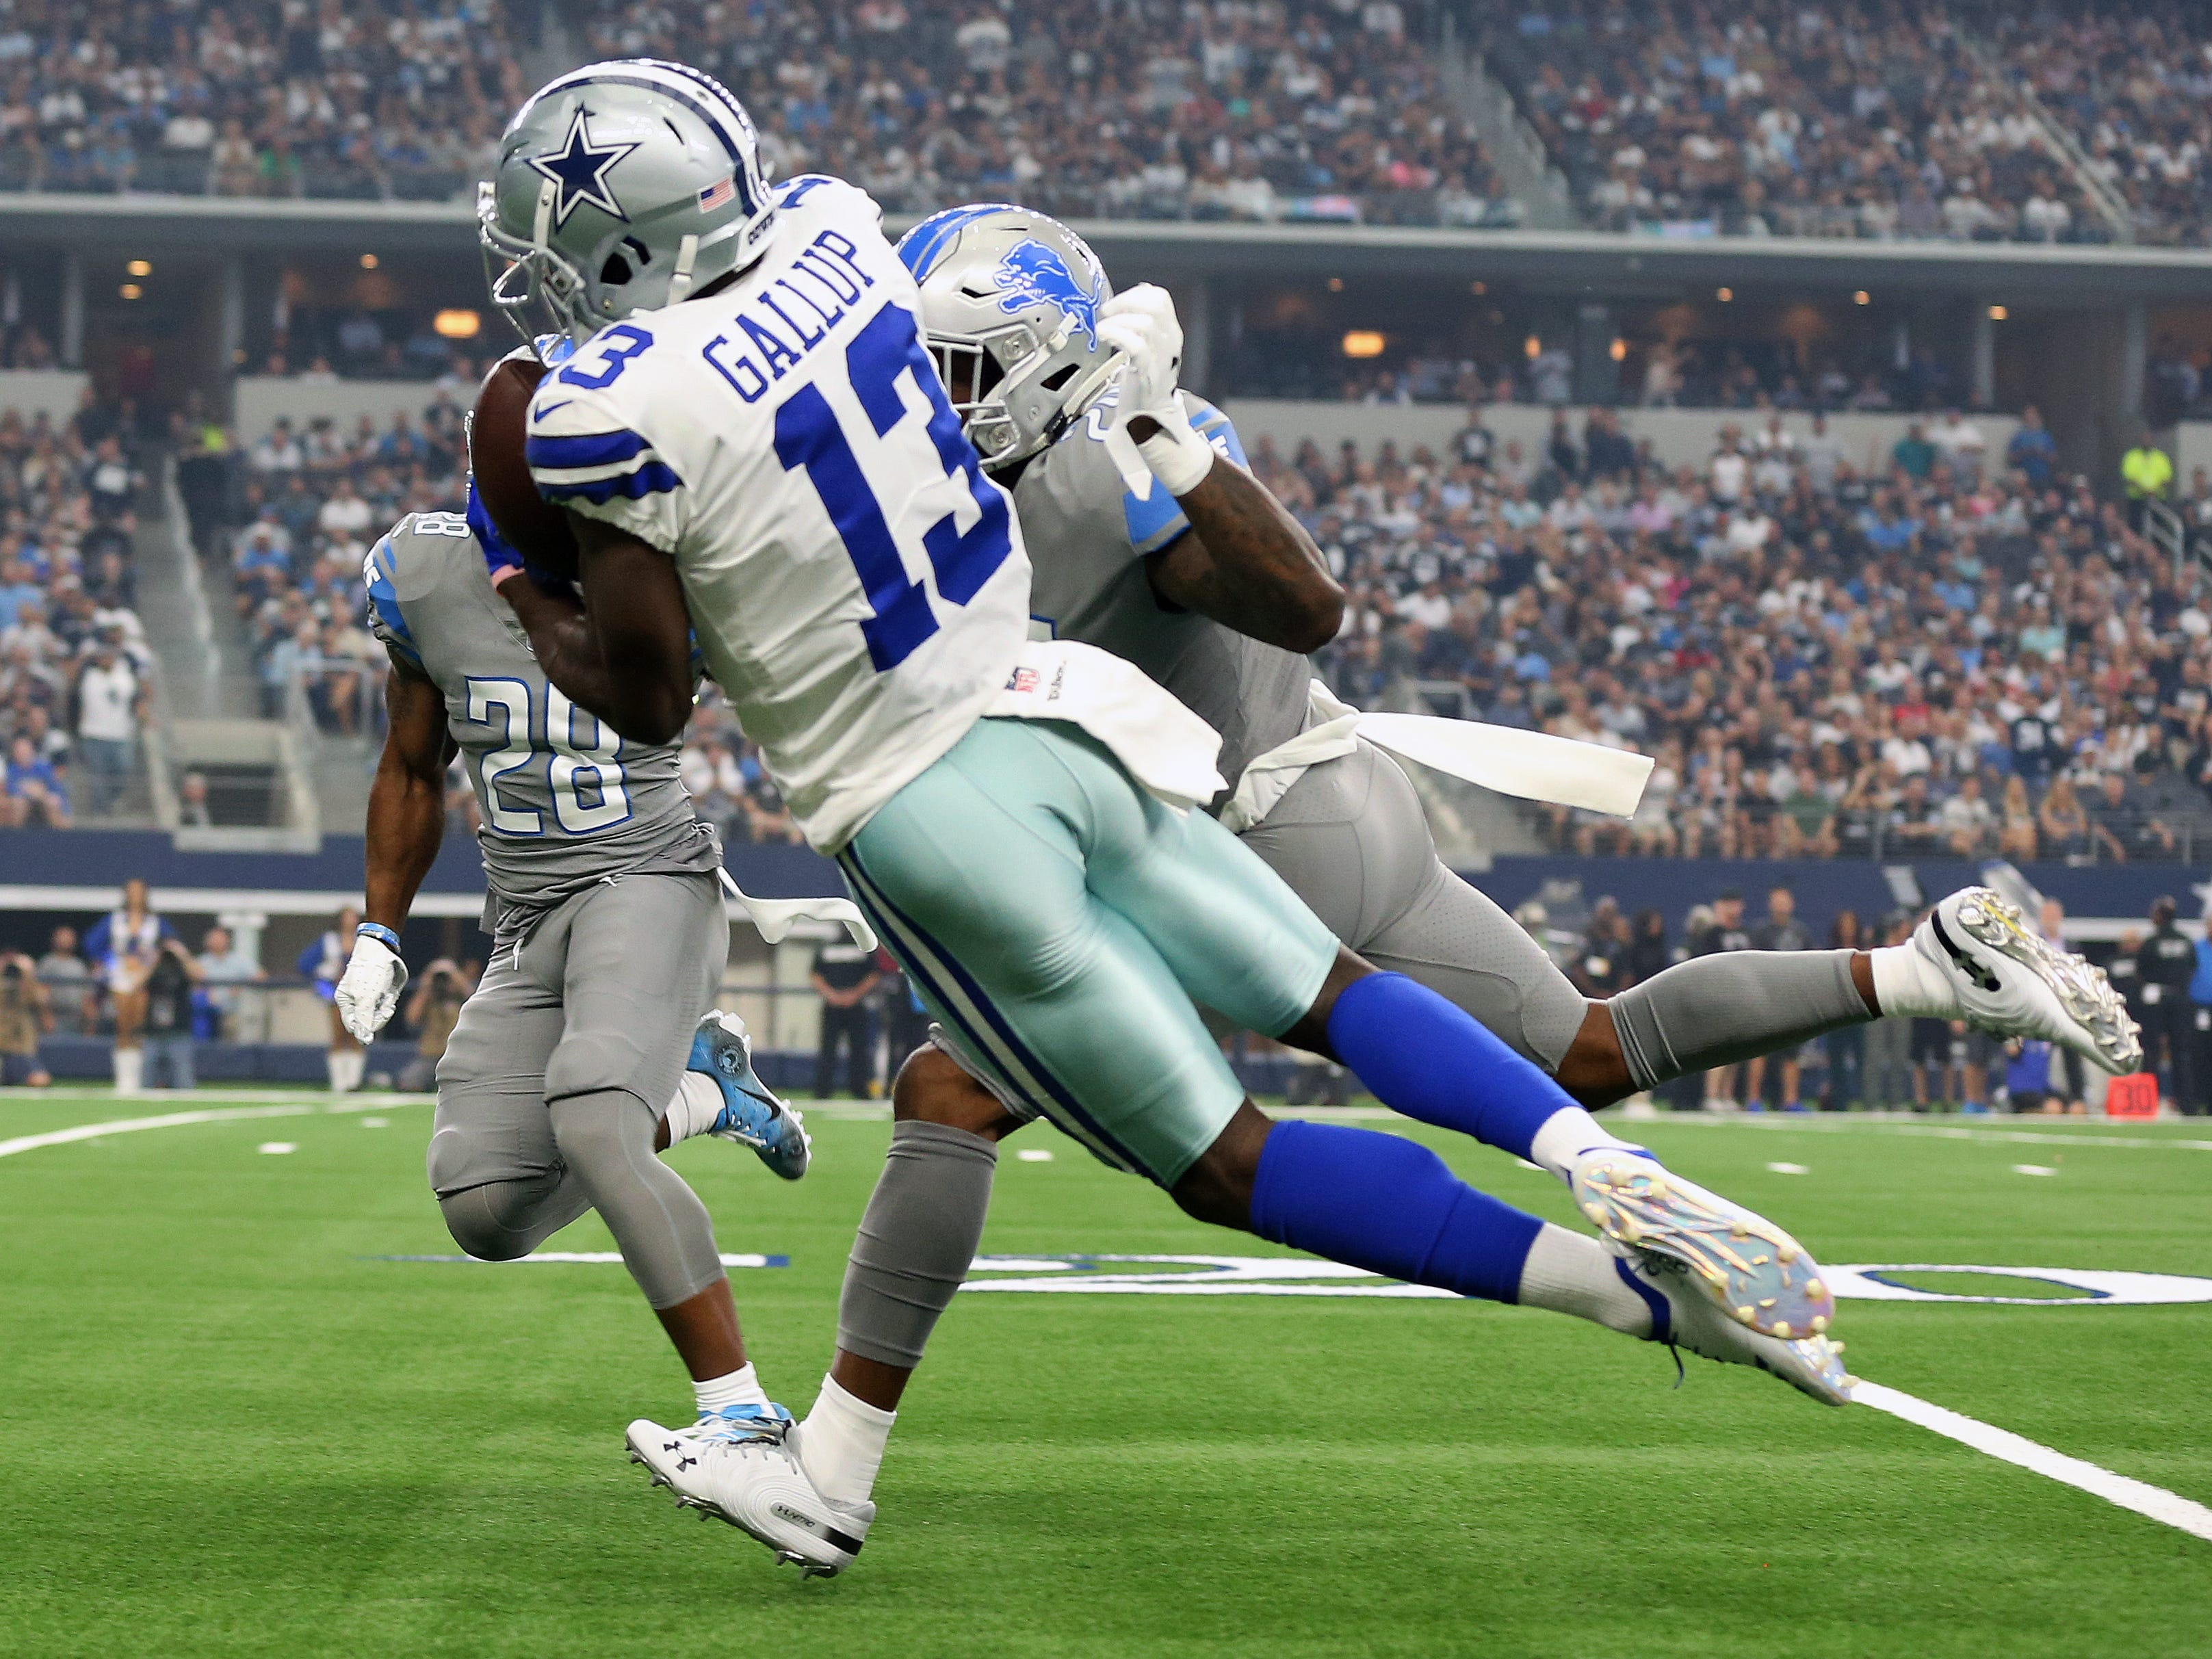 Dallas Cowboys wide receiver Michael Gallup makes a reception in the first quarter against the Detroit Lions.